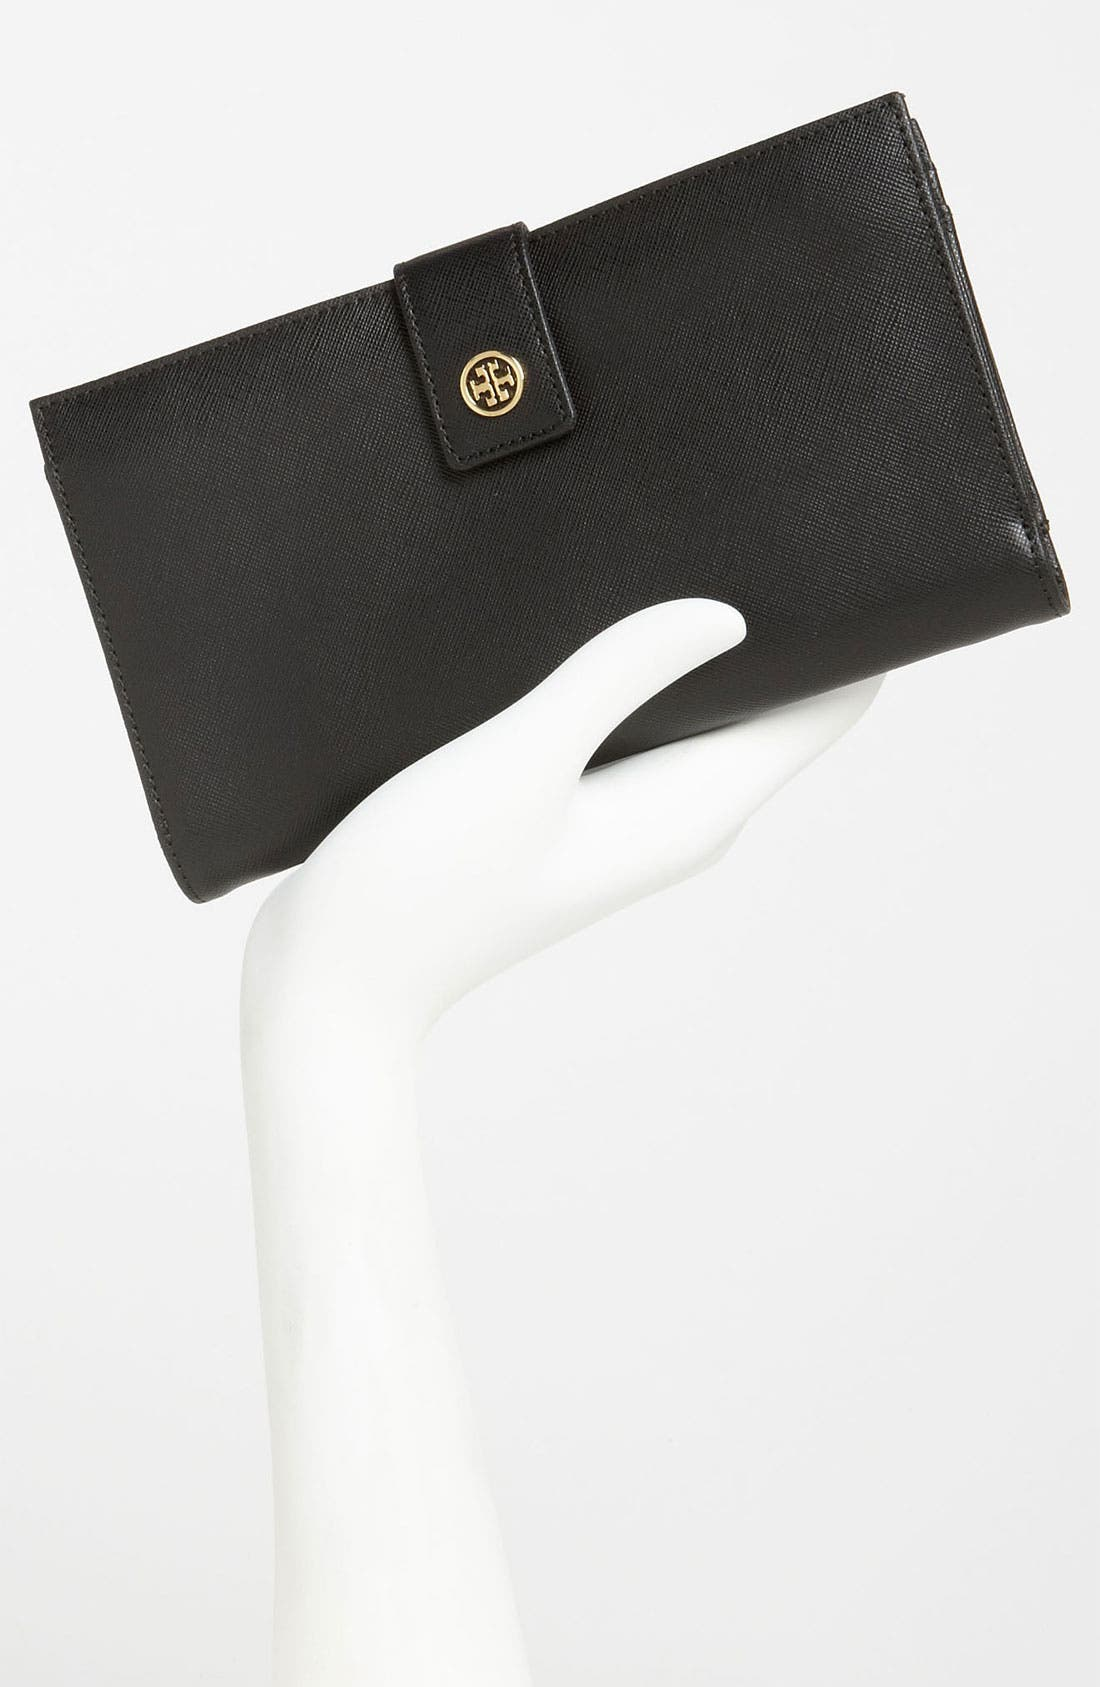 TORY BURCH,                             'Robinson' Oversized Travel Wallet,                             Alternate thumbnail 4, color,                             001